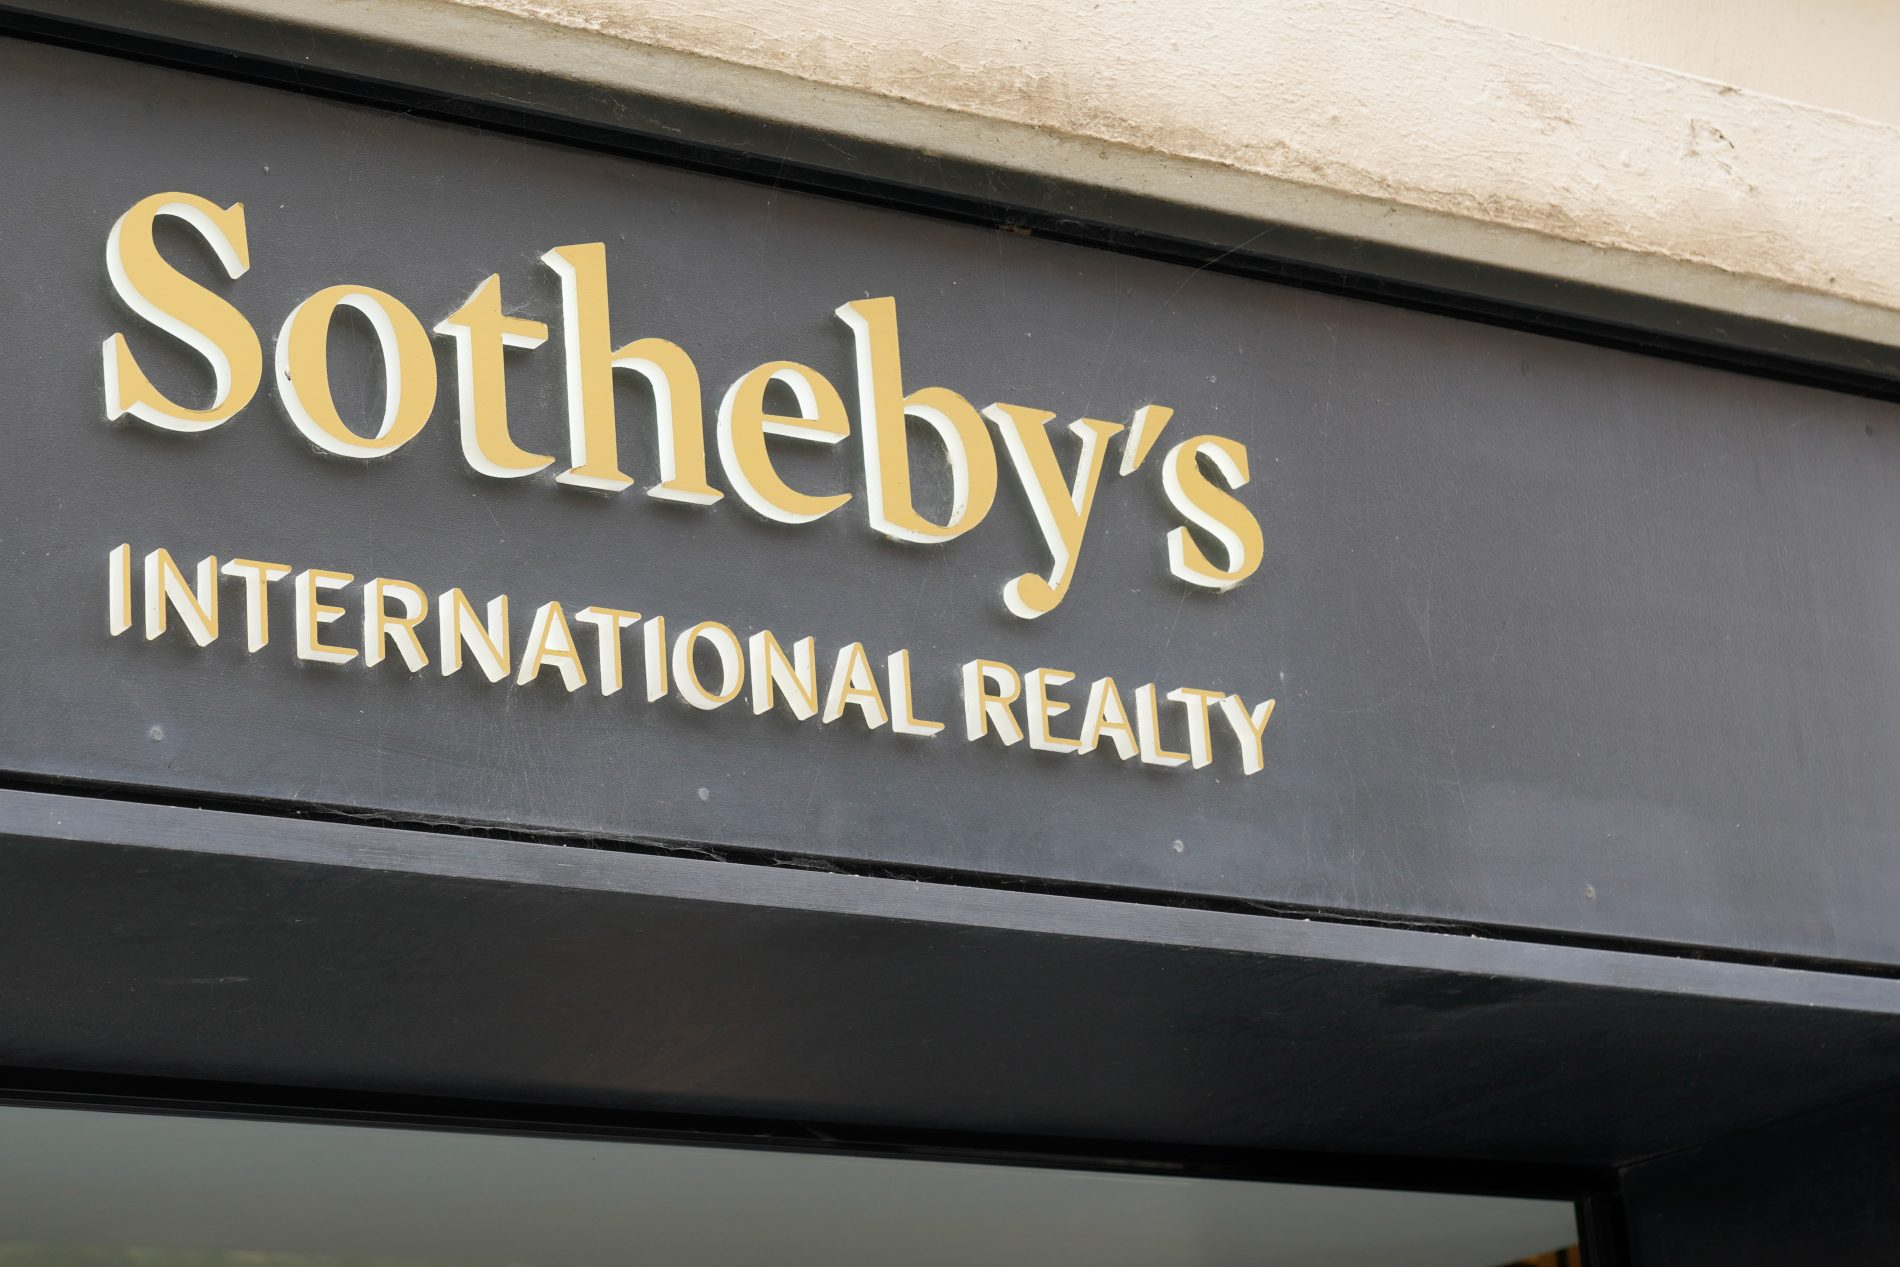 Biarritz , Aquitaine / France - 09 25 2020 : Sotheby logo and sign luxury brokers specialized in realty and auctions real estate text